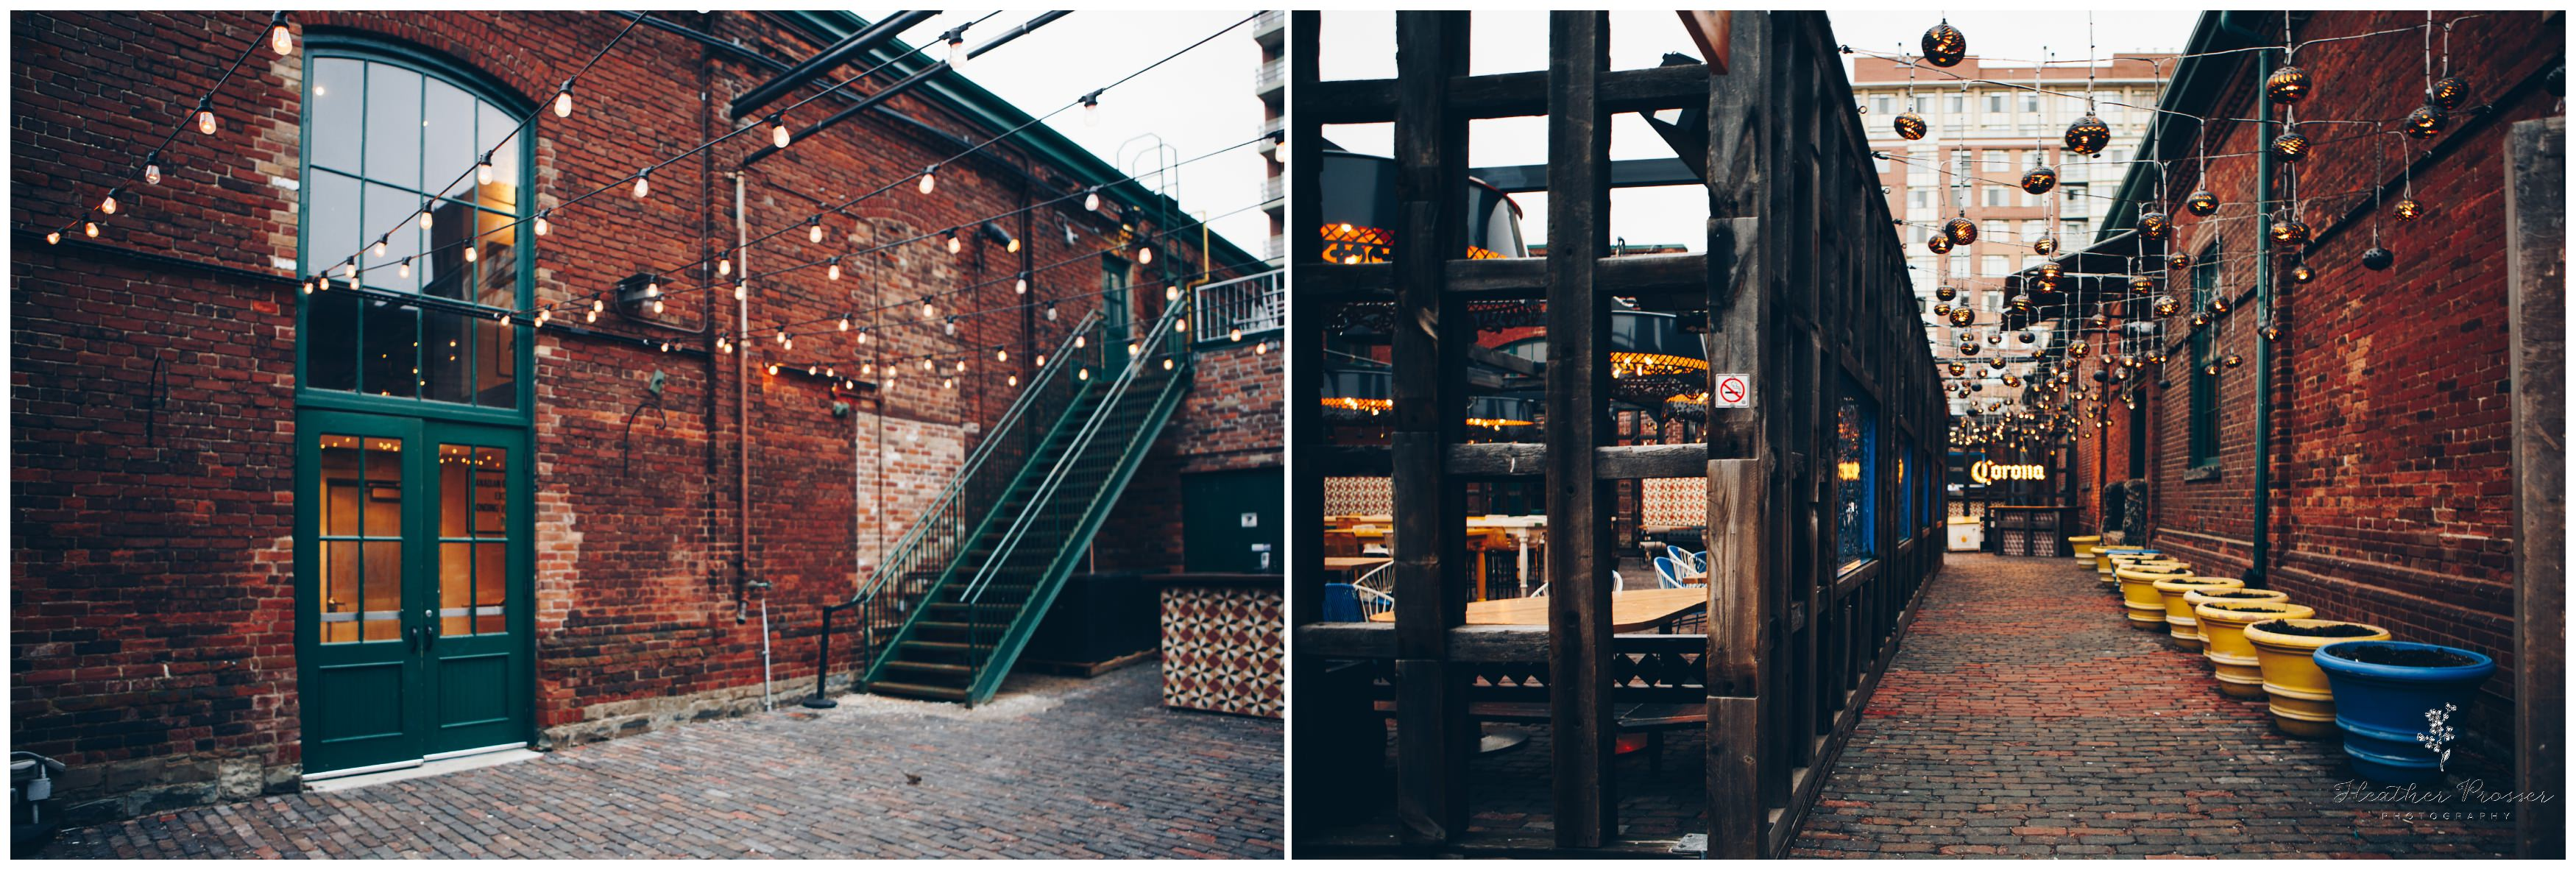 Toronto Distillery District Wedding_2607.jpg